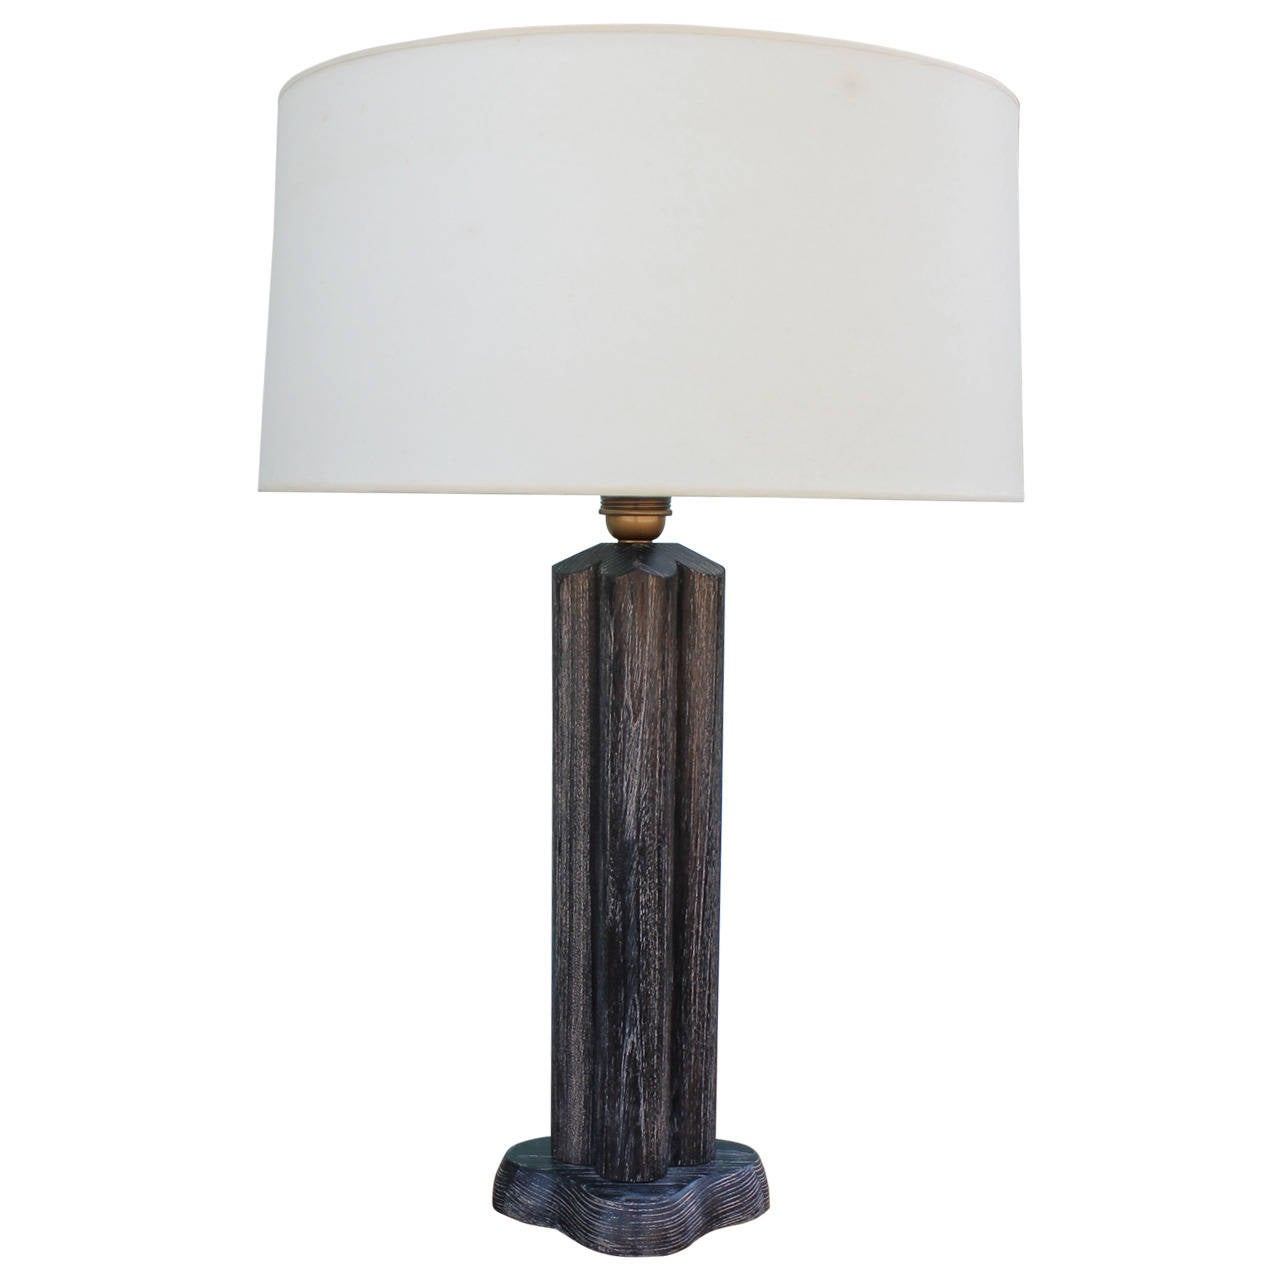 1940s Cerused Oak James Mont Table Lamp